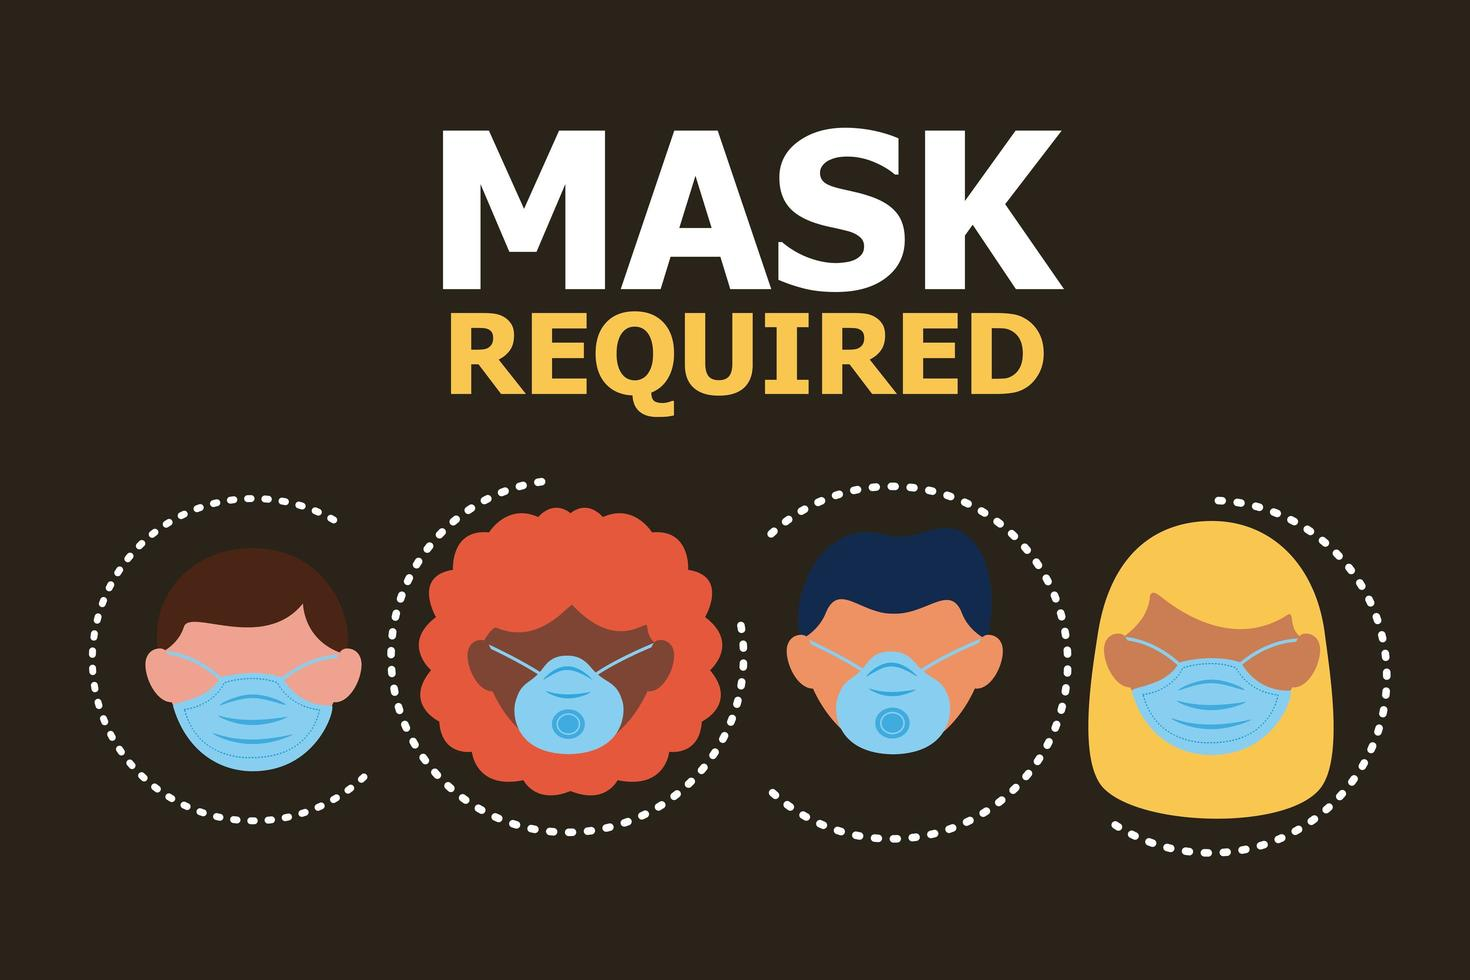 mask required banner with people wearing masks vector